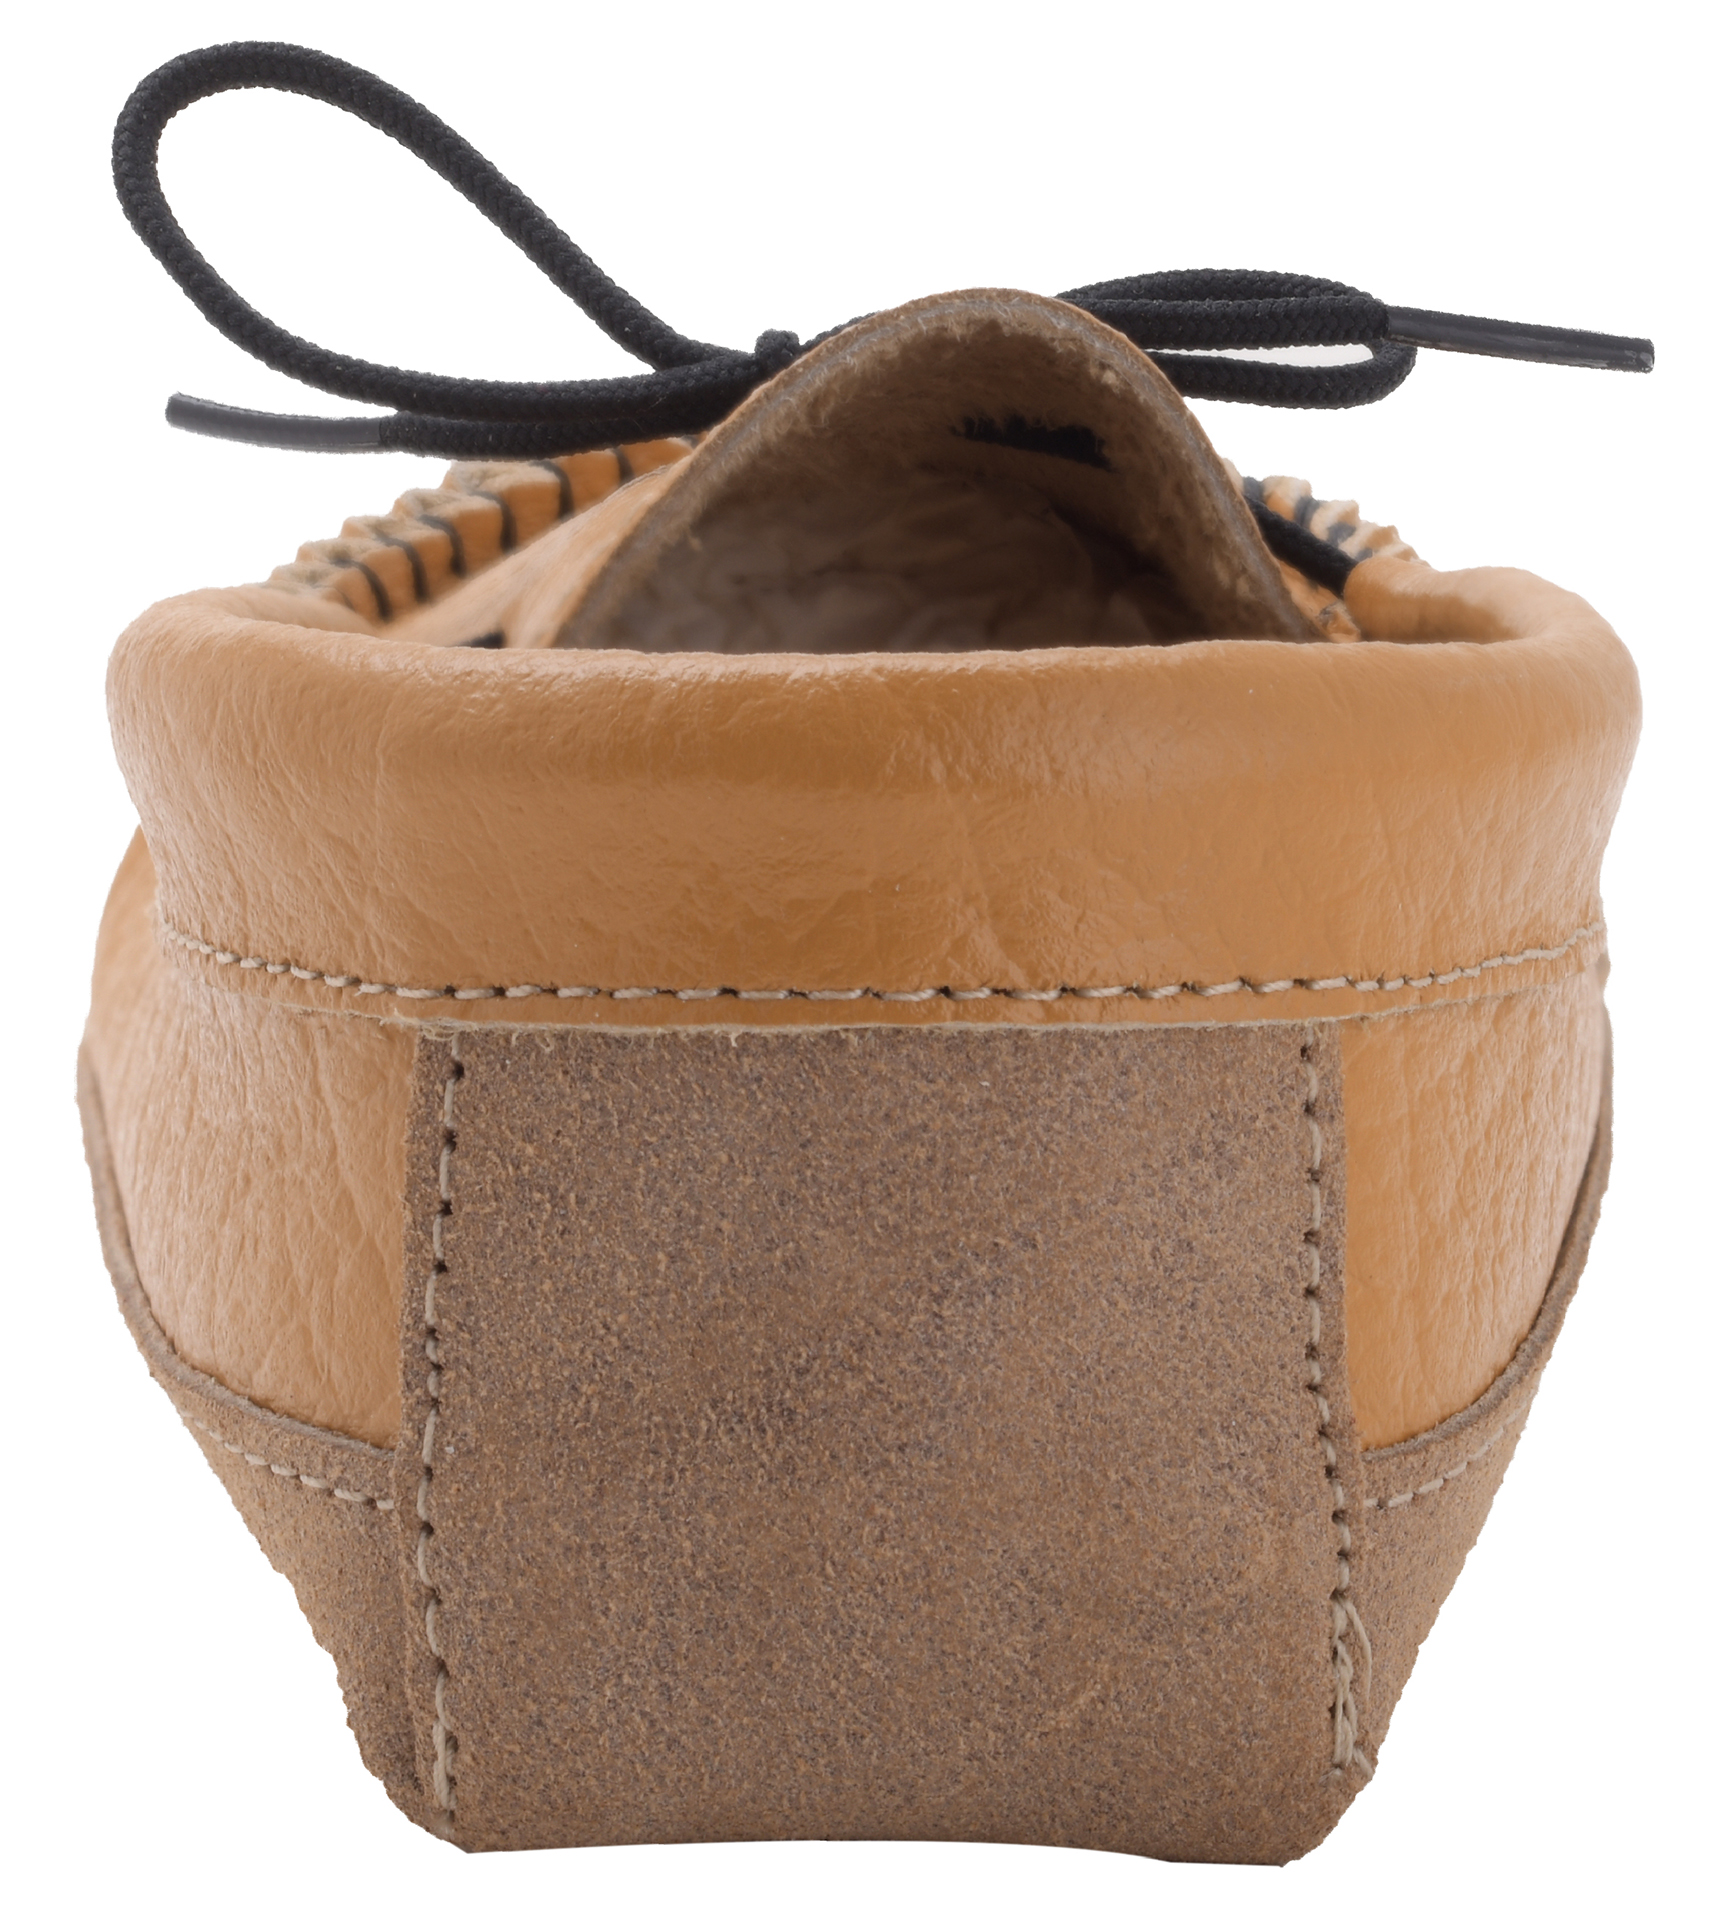 Leather-Earthing-Grounding-Moccasin-Slippers-Made-in-the-UK-Mens-amp-Ladies thumbnail 6